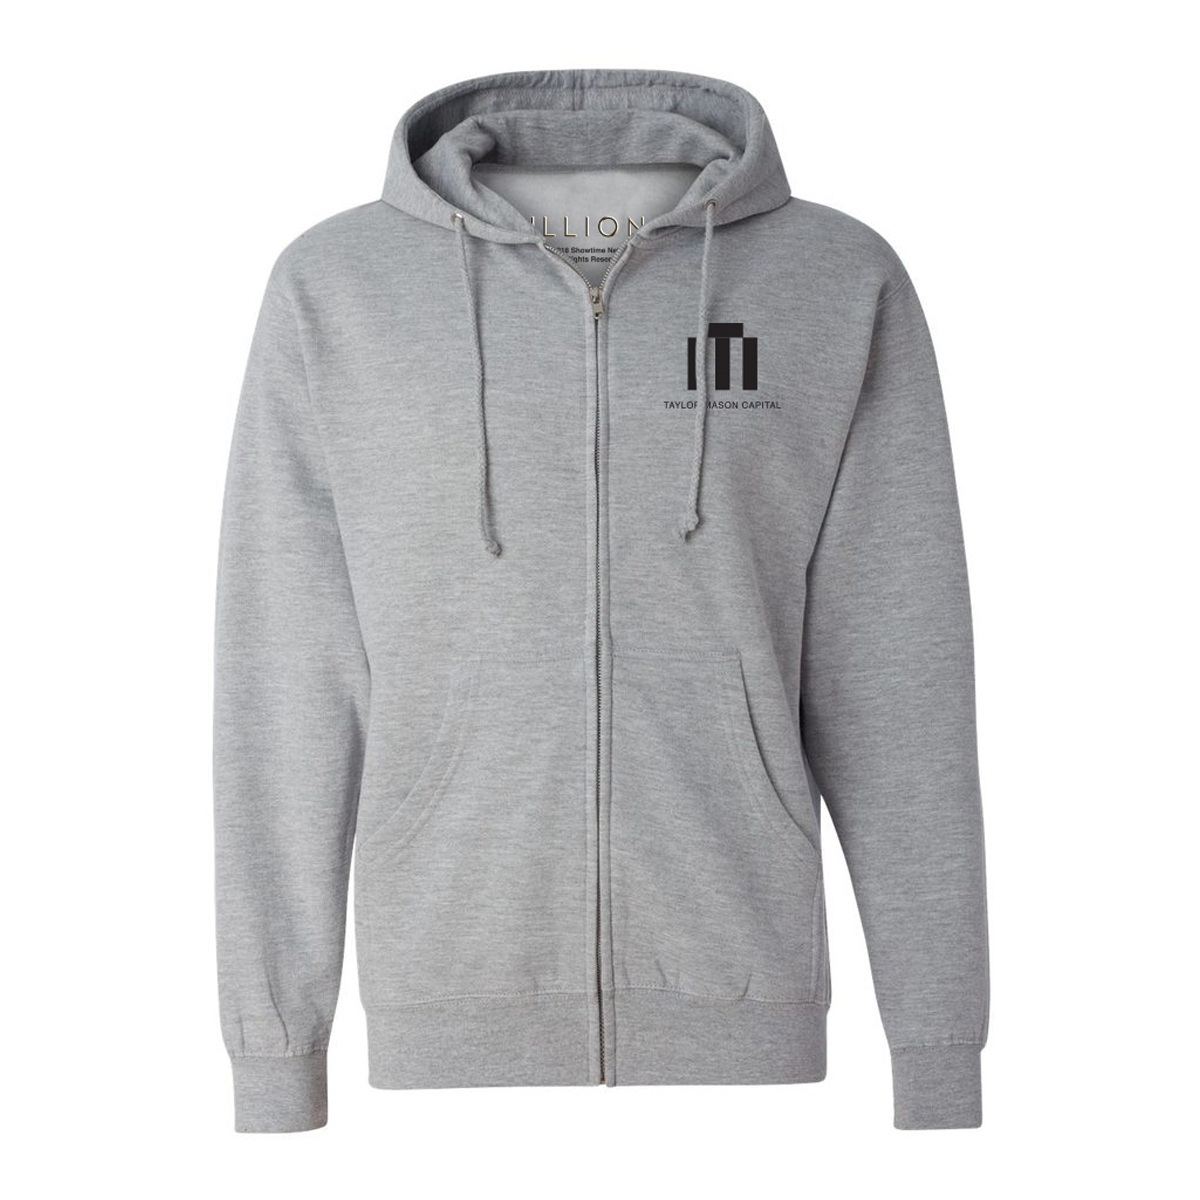 Billions Taylor Mason Capital Logo Zip Up Hoodie